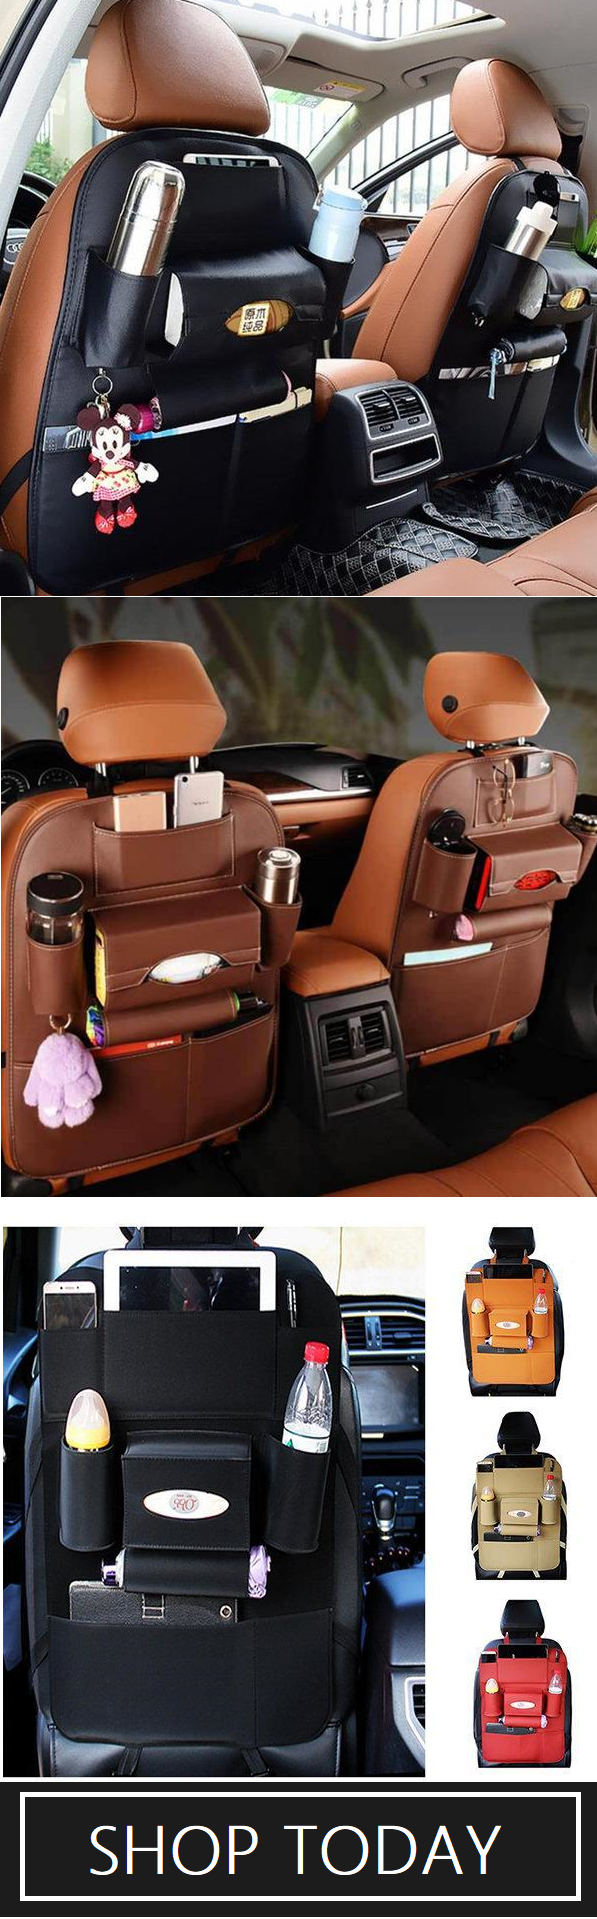 23 99 Usd Shop Now 5 Styles Leather Car Storage Bag Multi Compartment Car Seat Storage Container Outdoors Hanging Bag Auto Carros Compras